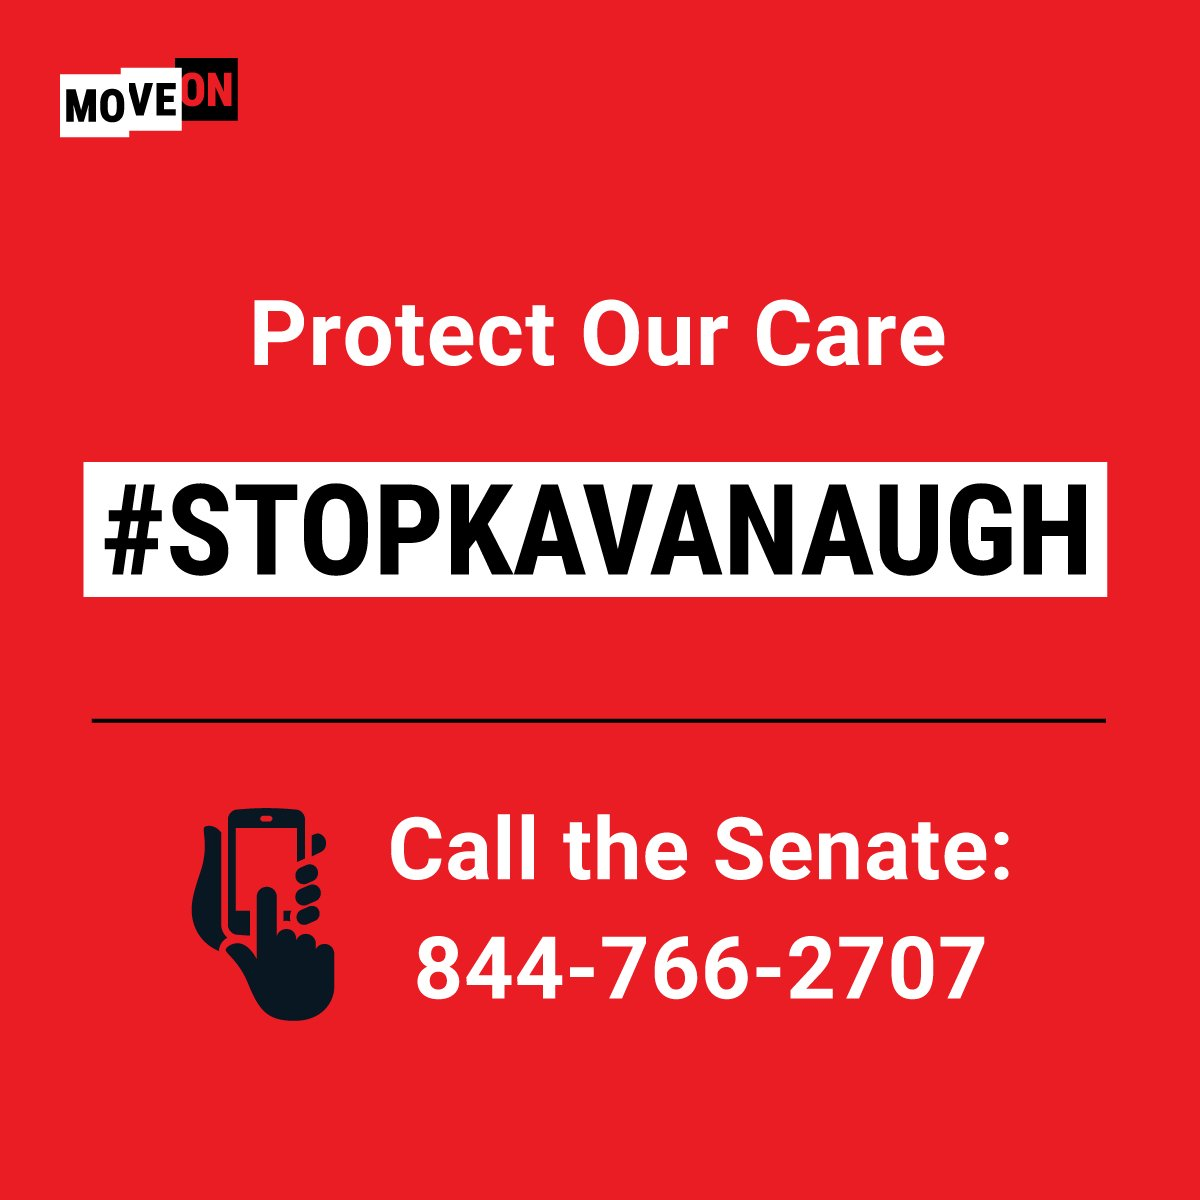 If the #Senate doesn't block @realDonaldTrump's #SCOTUS pick, the rights of future generations are at risk. Call now to #SaveSCOTUS: 844-766-2707 #StopKavanaugh